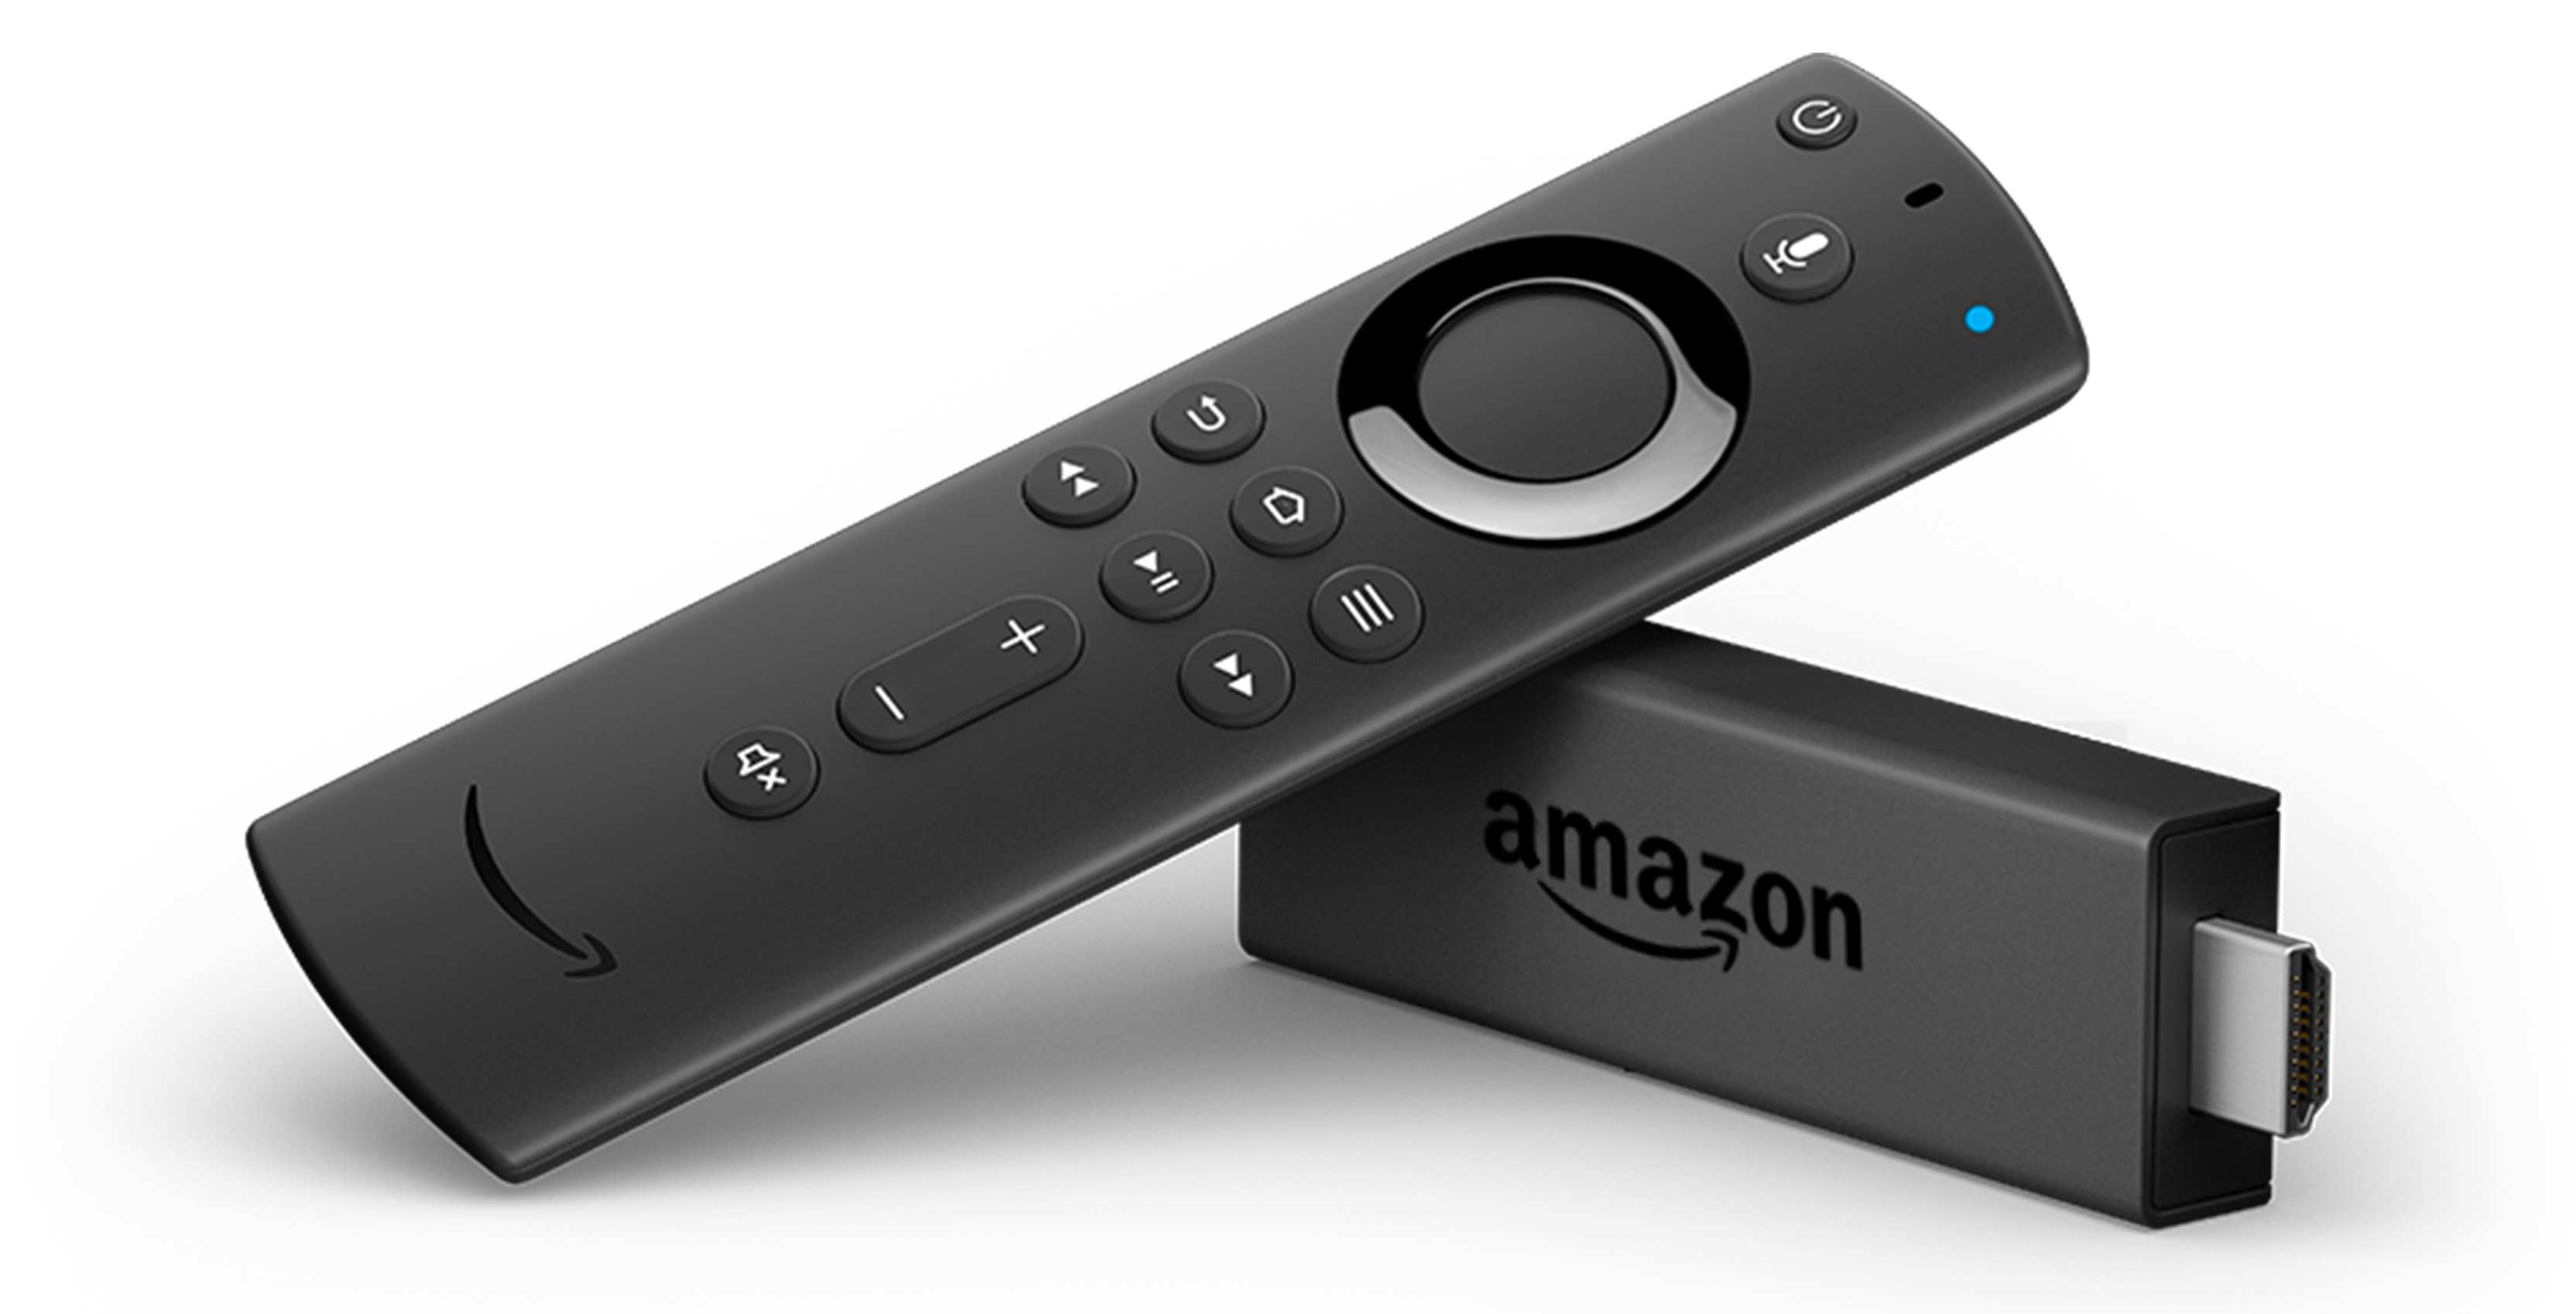 Deal alert: Get Amazon's Alexa Voice remote for just $15